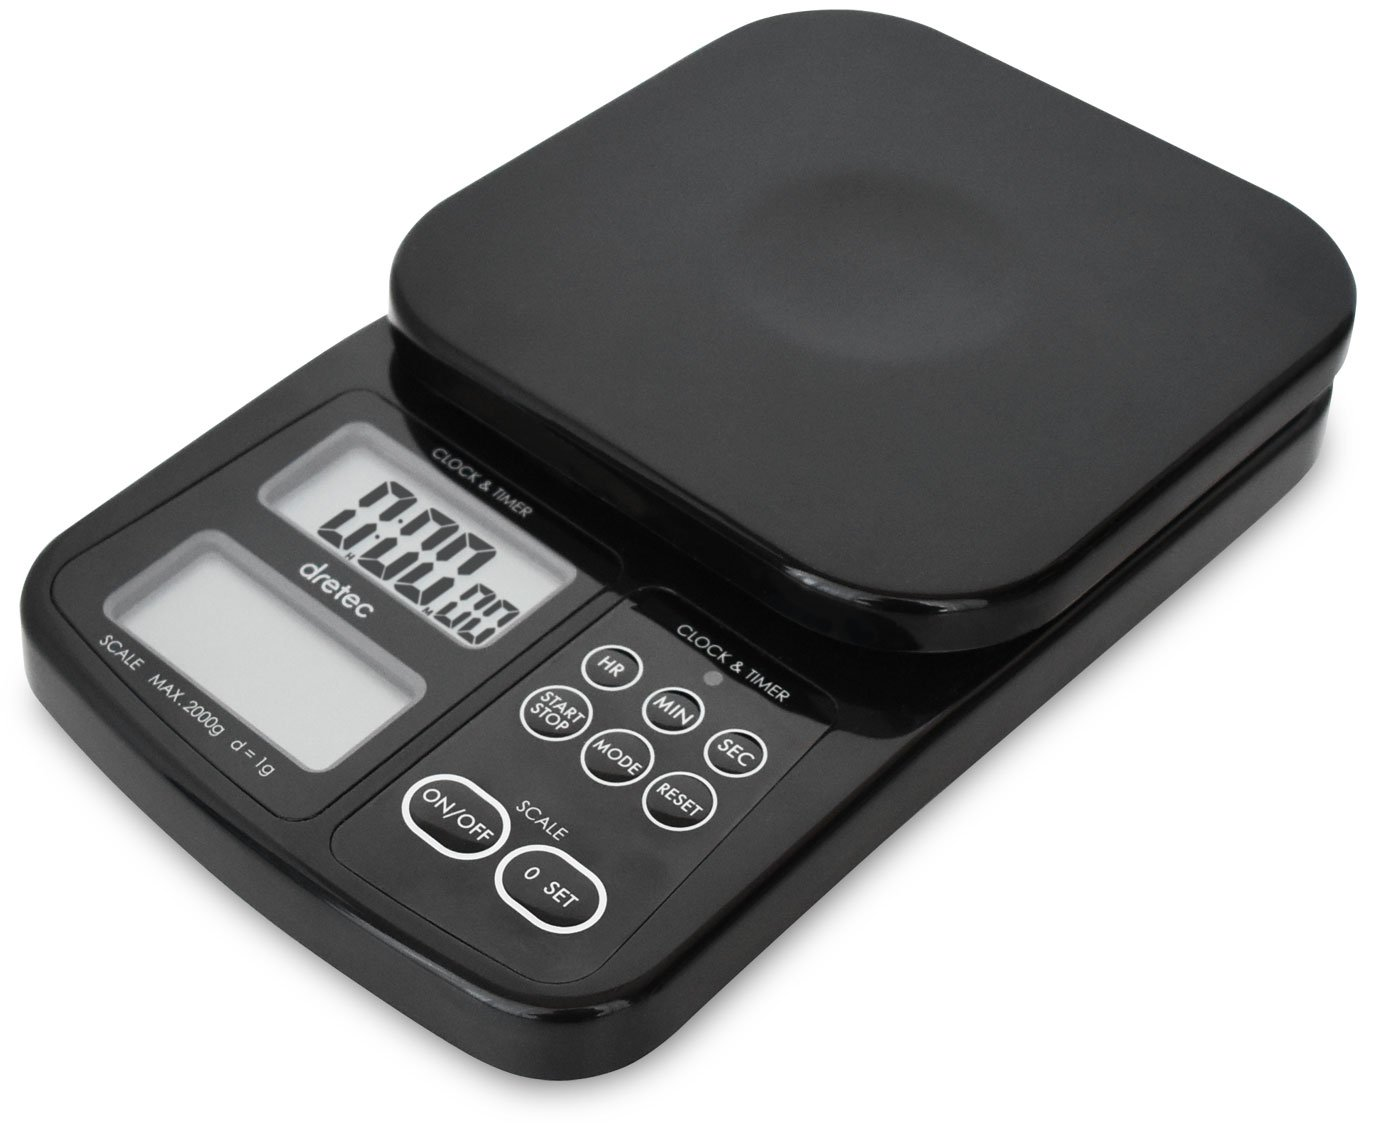 dretec Digital Drip Coffee Scale with Timer, Multifunction Kitchen Food Scale, 1g to 2kg, Black, Officially Tested in Japan (batteries included)